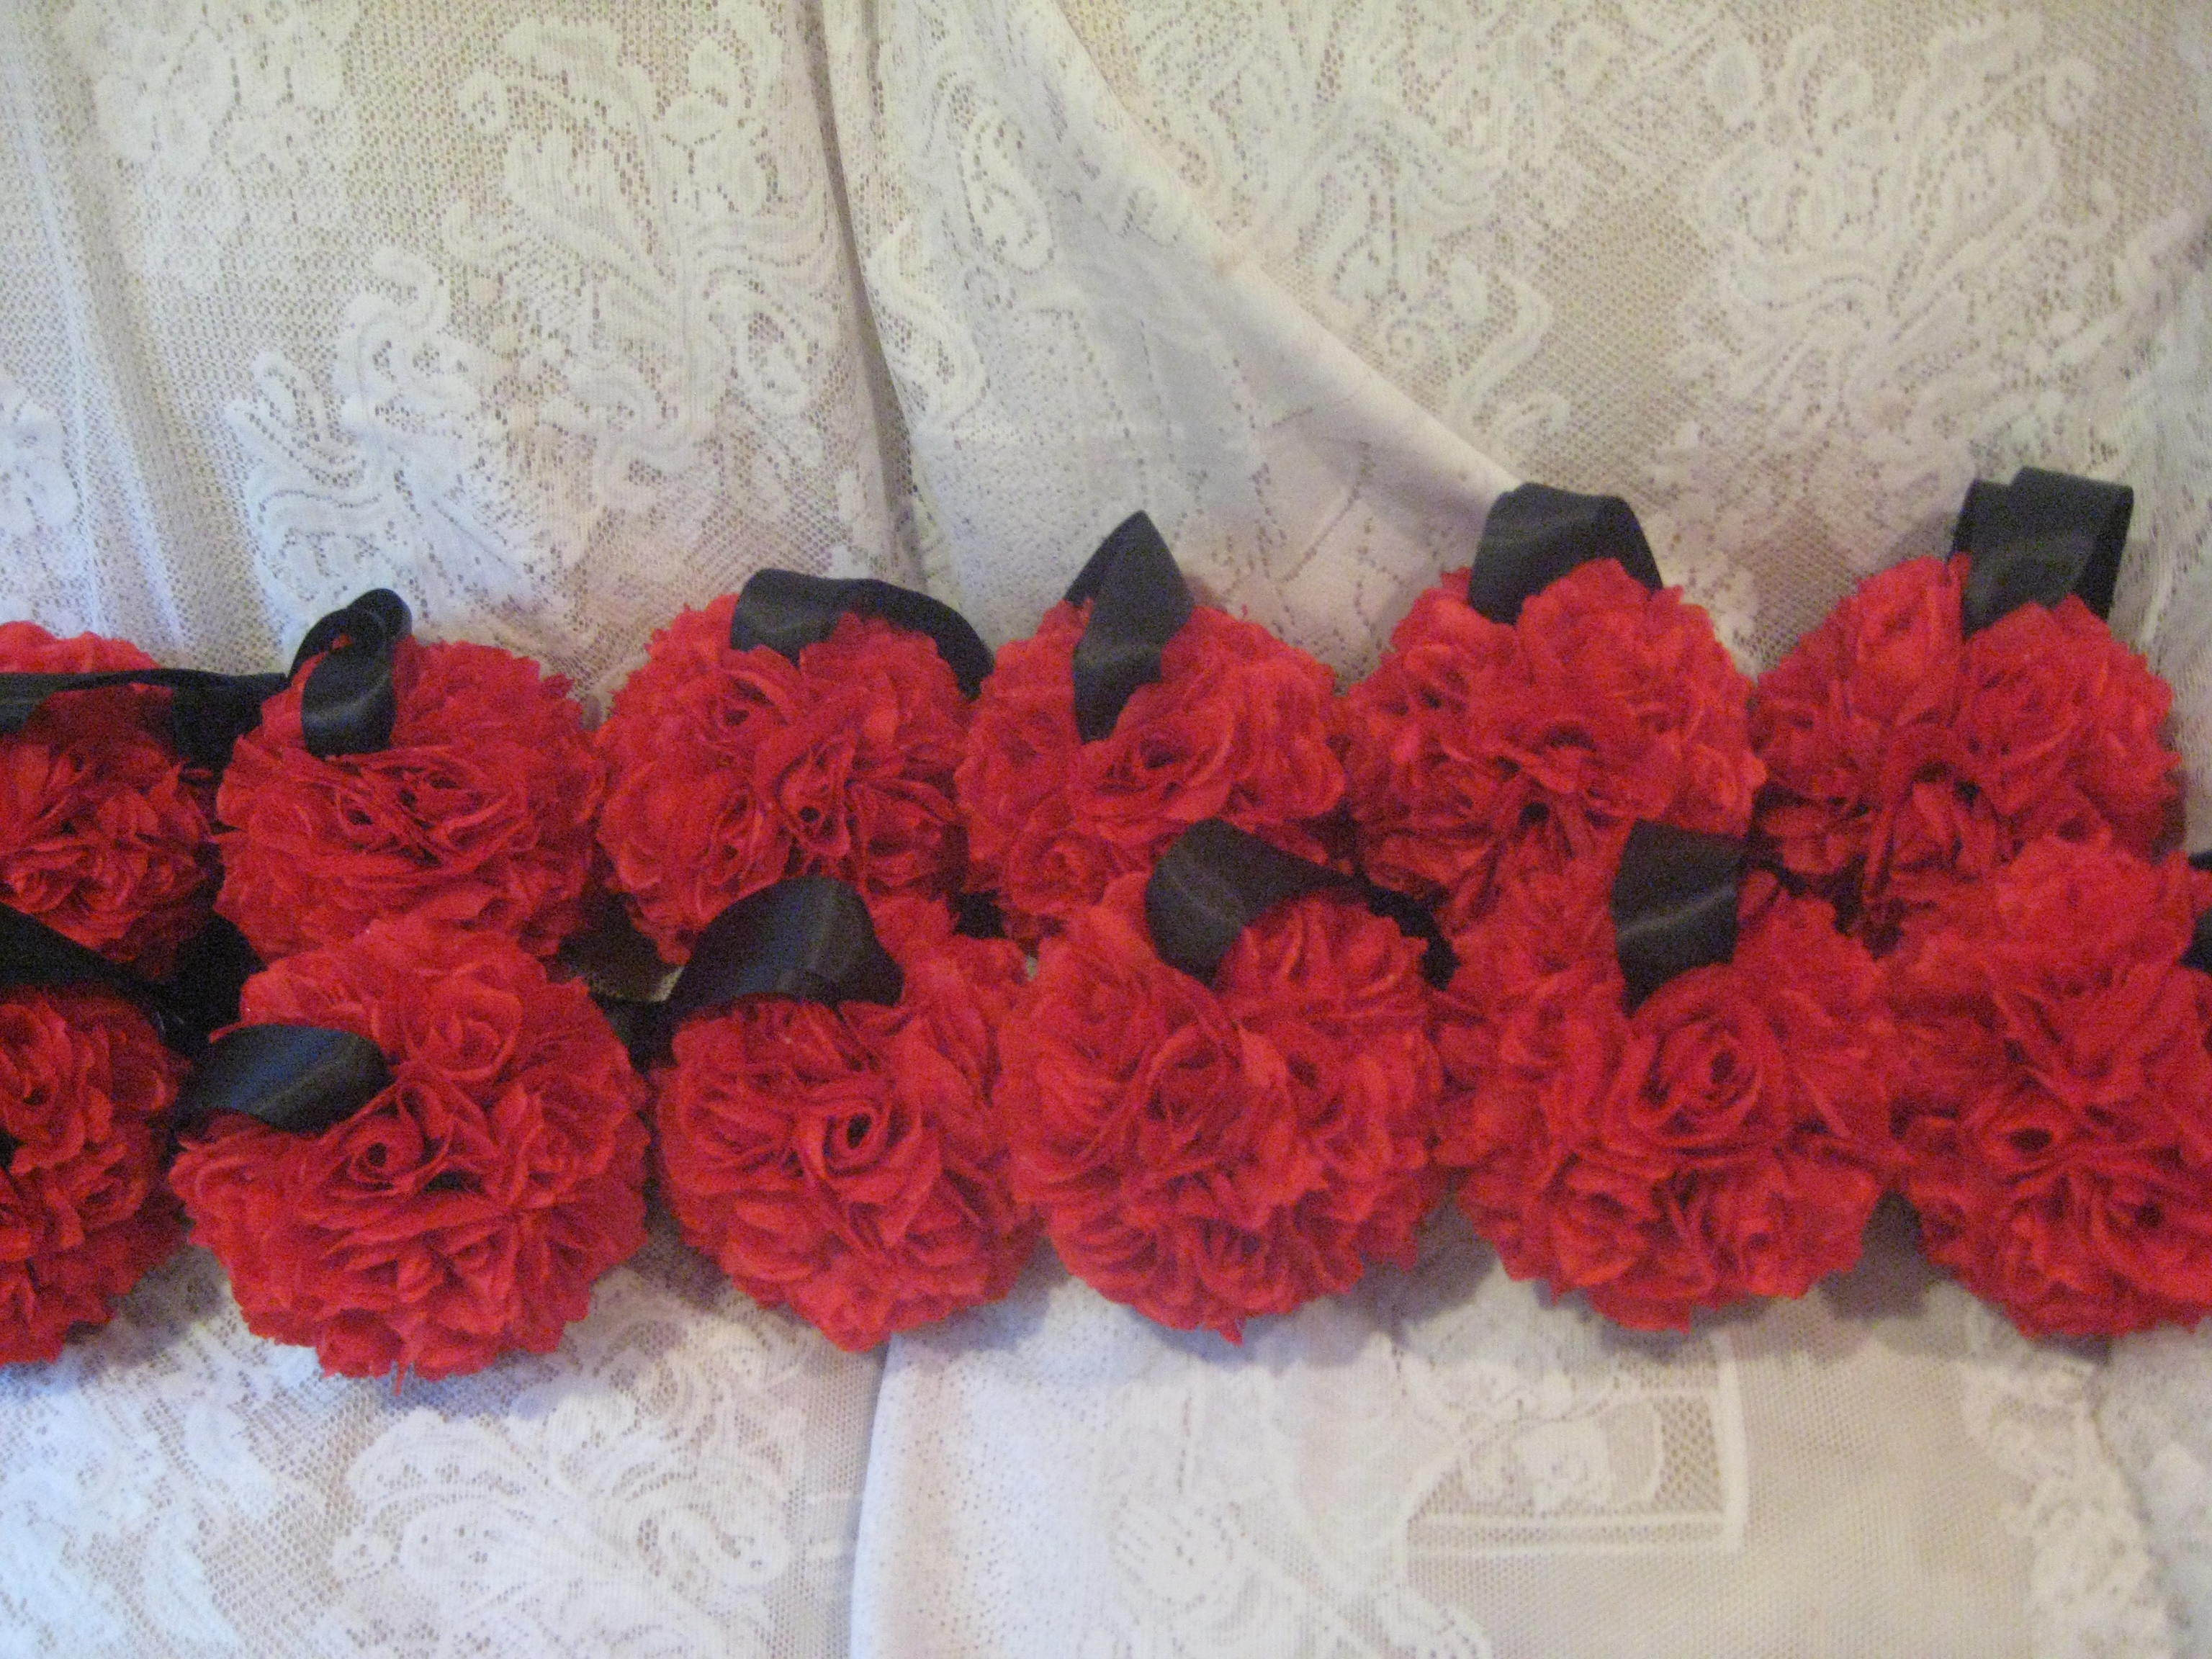 Ceremony, Reception, Flowers & Decor, Decor, Bridesmaids, Bridesmaids Dresses, Fashion, red, purple, black, gold, Ceremony Flowers, Aisle Decor, Bride Bouquets, Bridesmaid Bouquets, Flowers, Bouquet, Girl, Bridesmaid, Aisle, Kissing, Pomanders, Balls, Flower Wedding Dresses